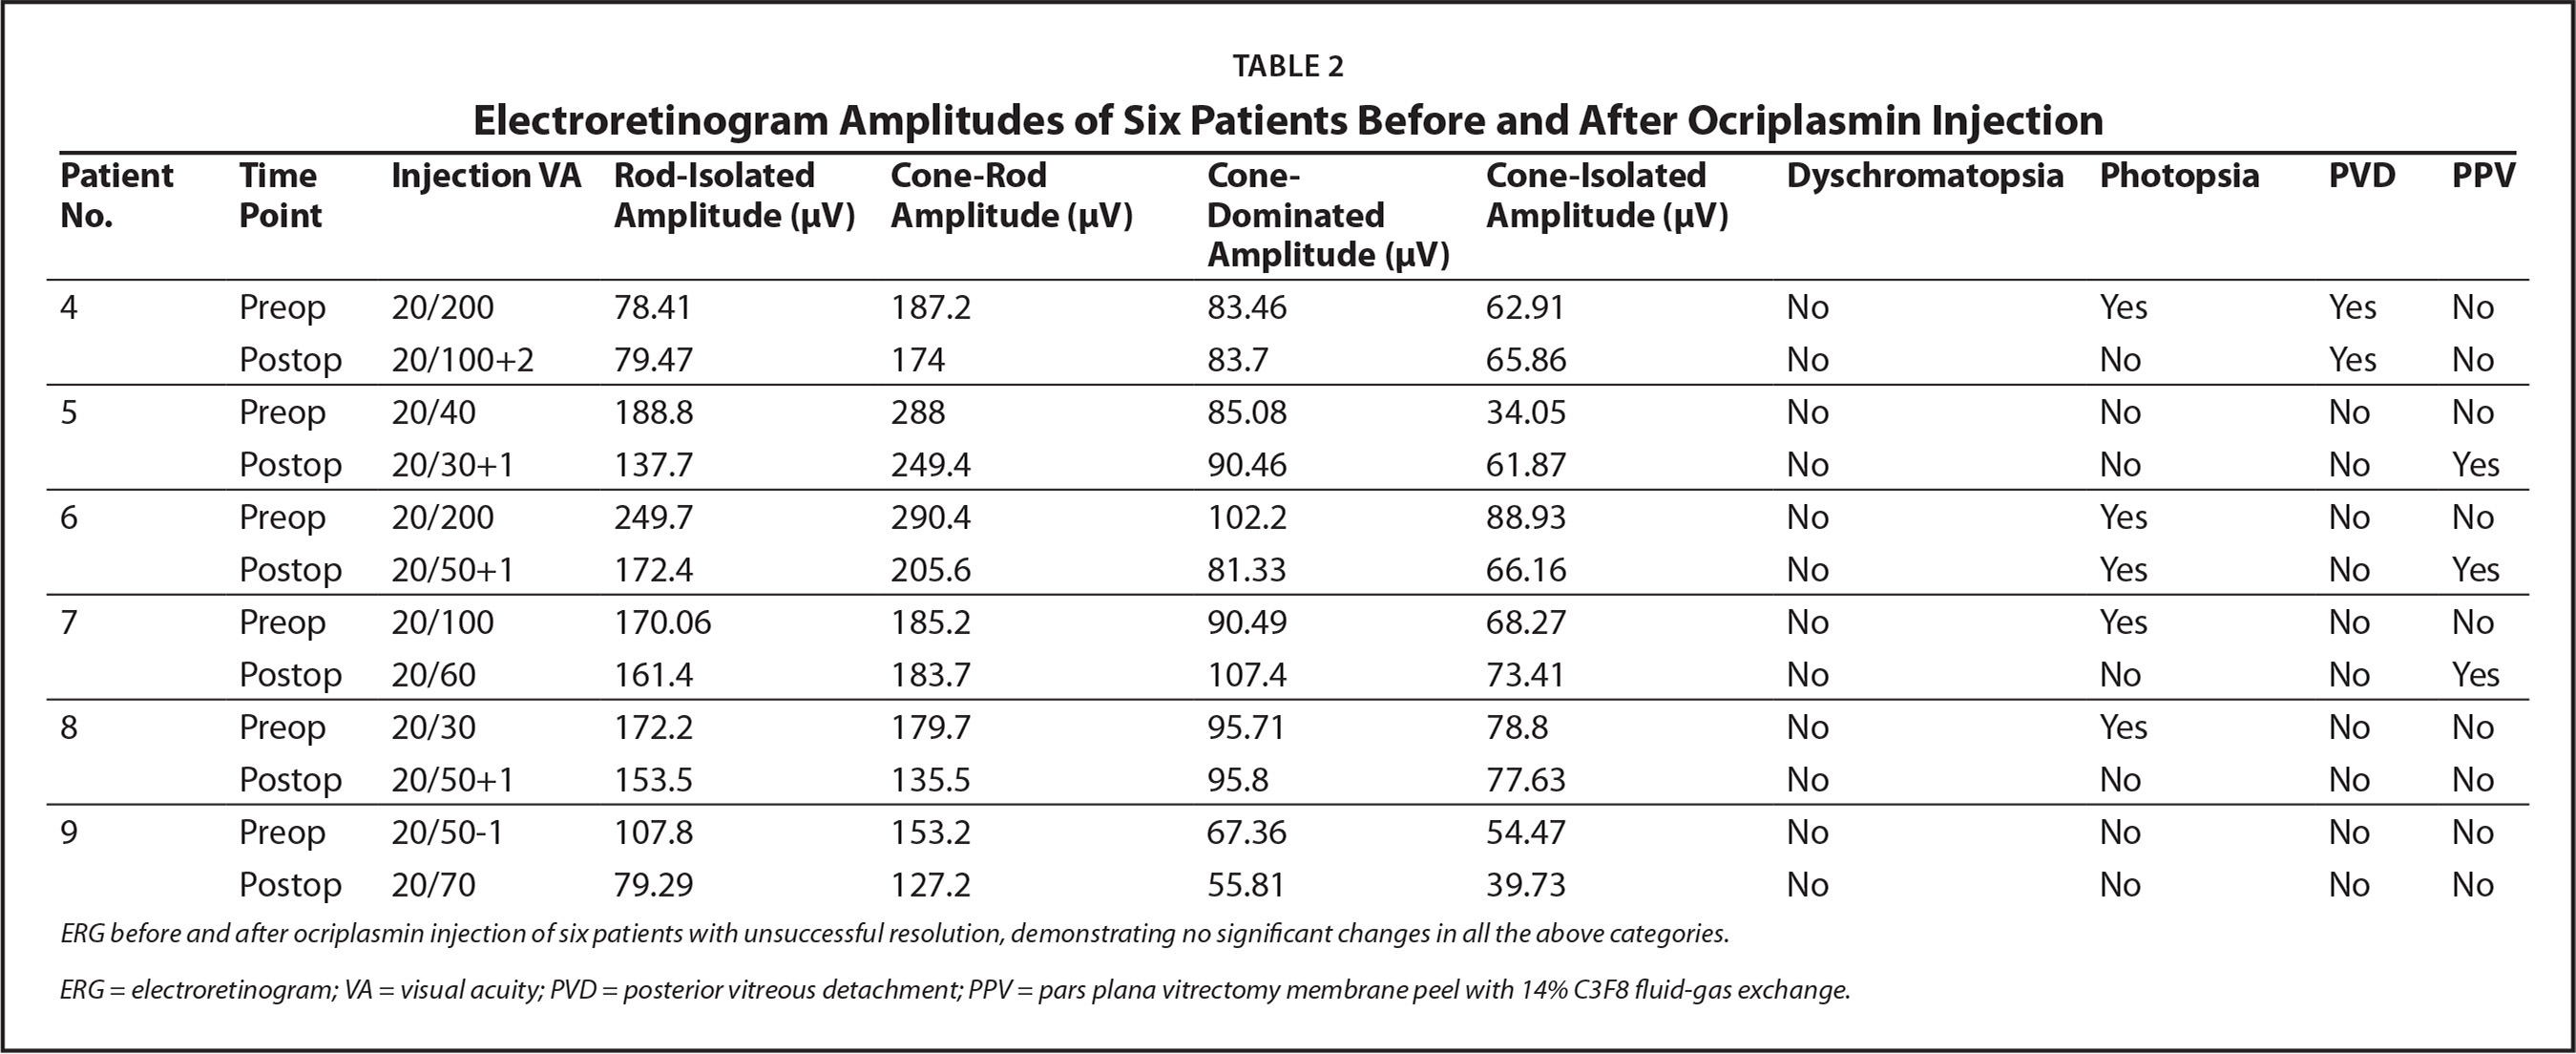 Electroretinogram Amplitudes of Six Patients Before and After Ocriplasmin Injection